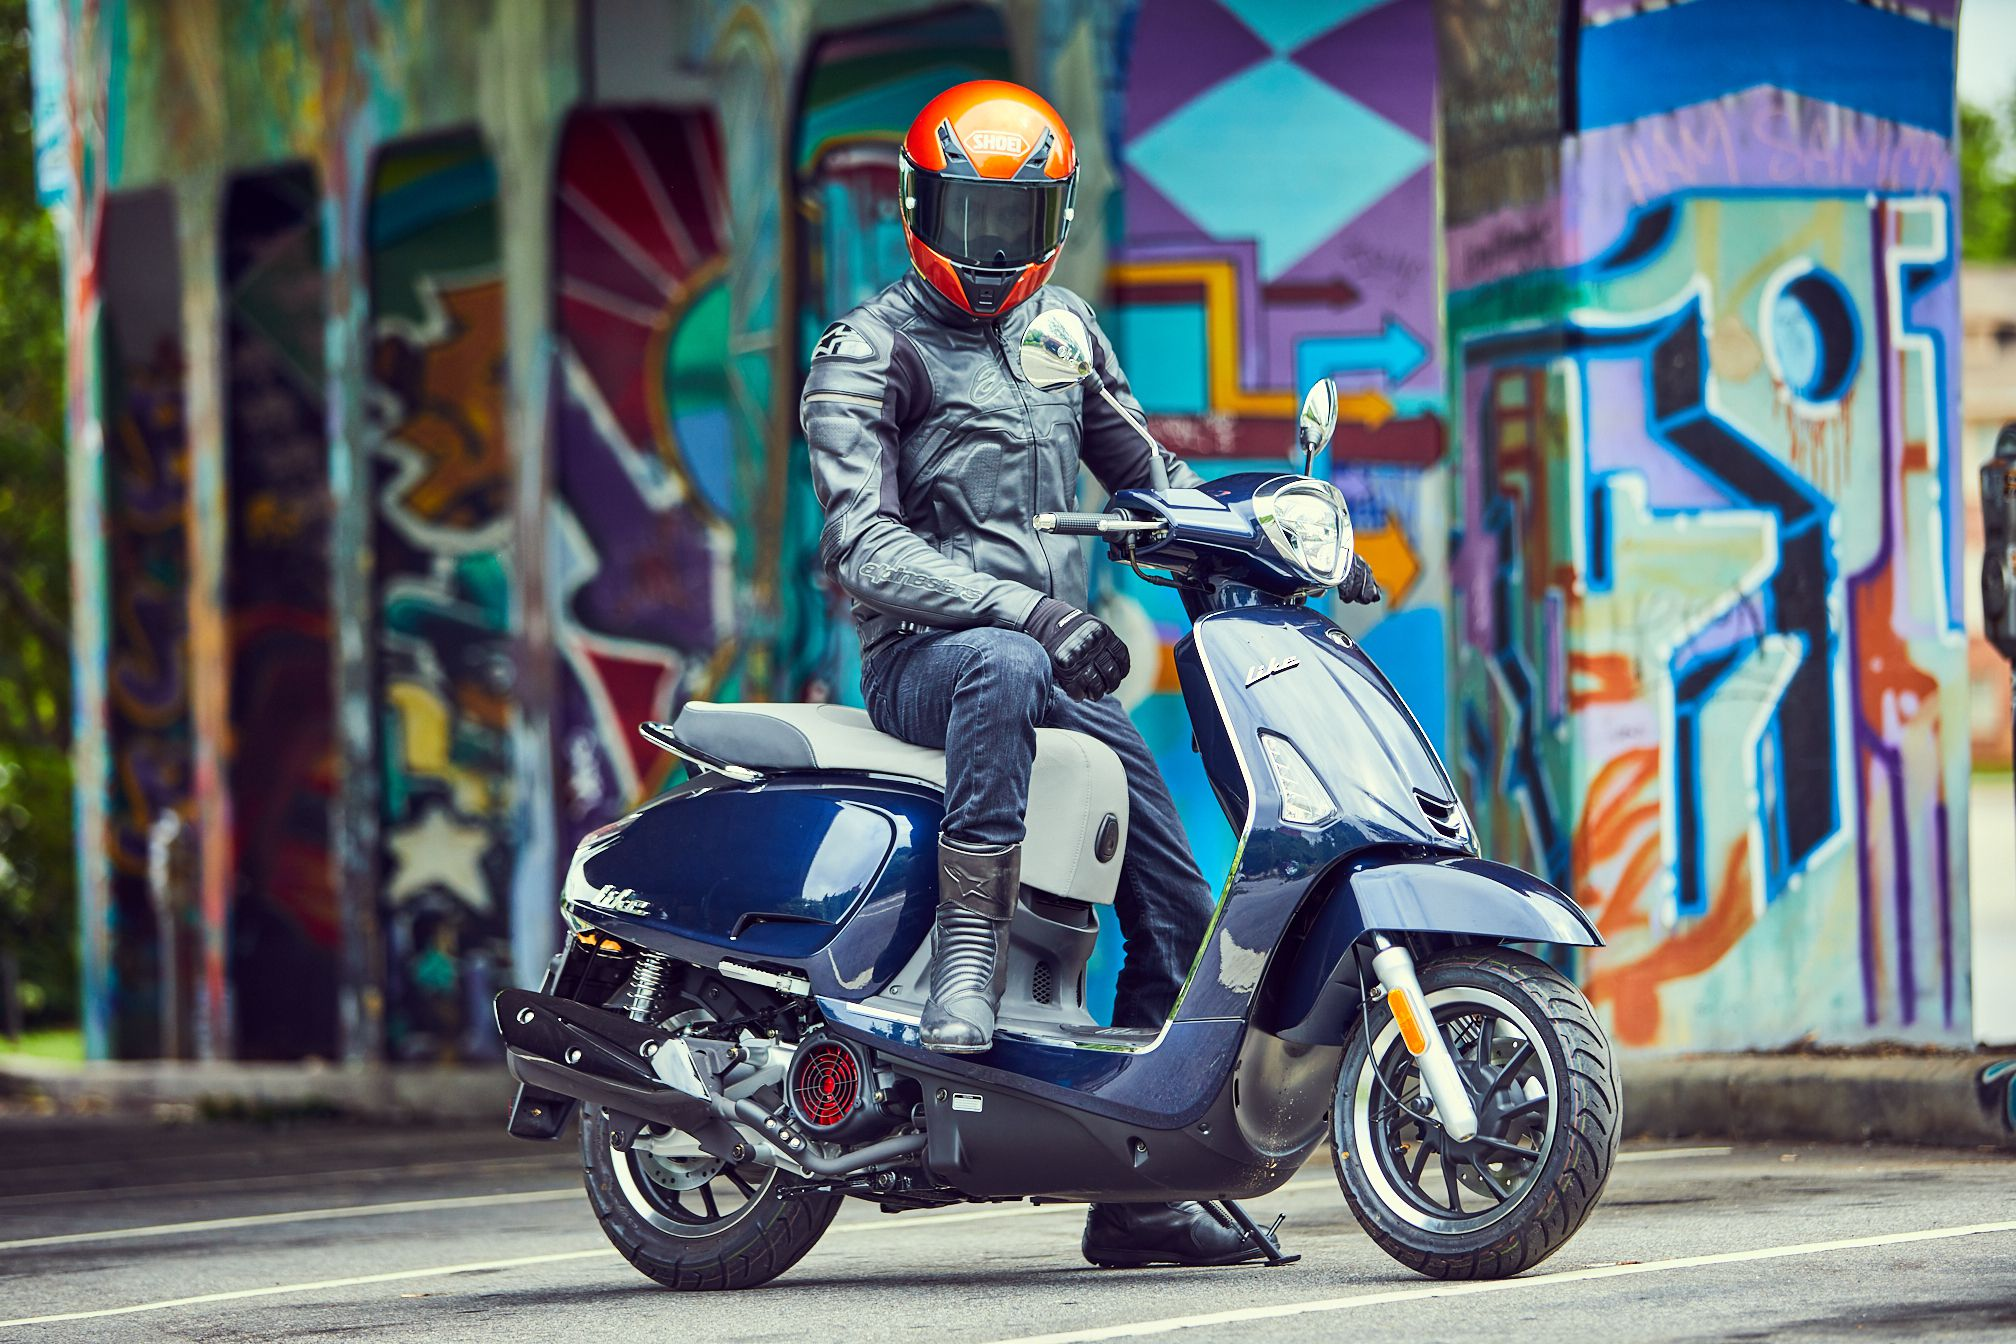 First Ride Review: Kymco's Xciting 400i, XTown 300i and Like 150i